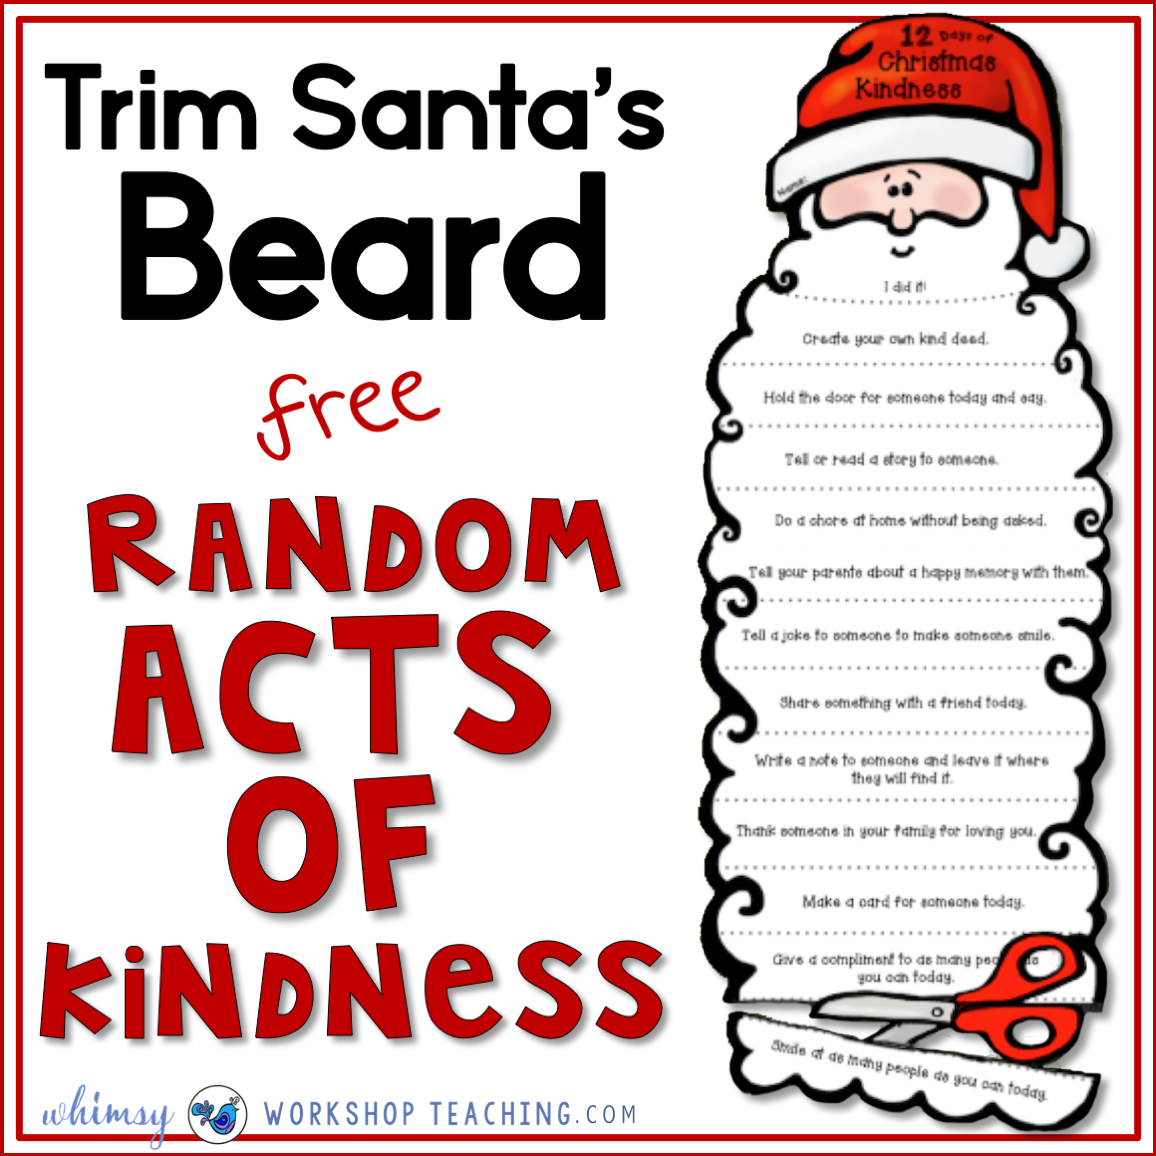 Trim Santa's beard with each act of kindness you do!